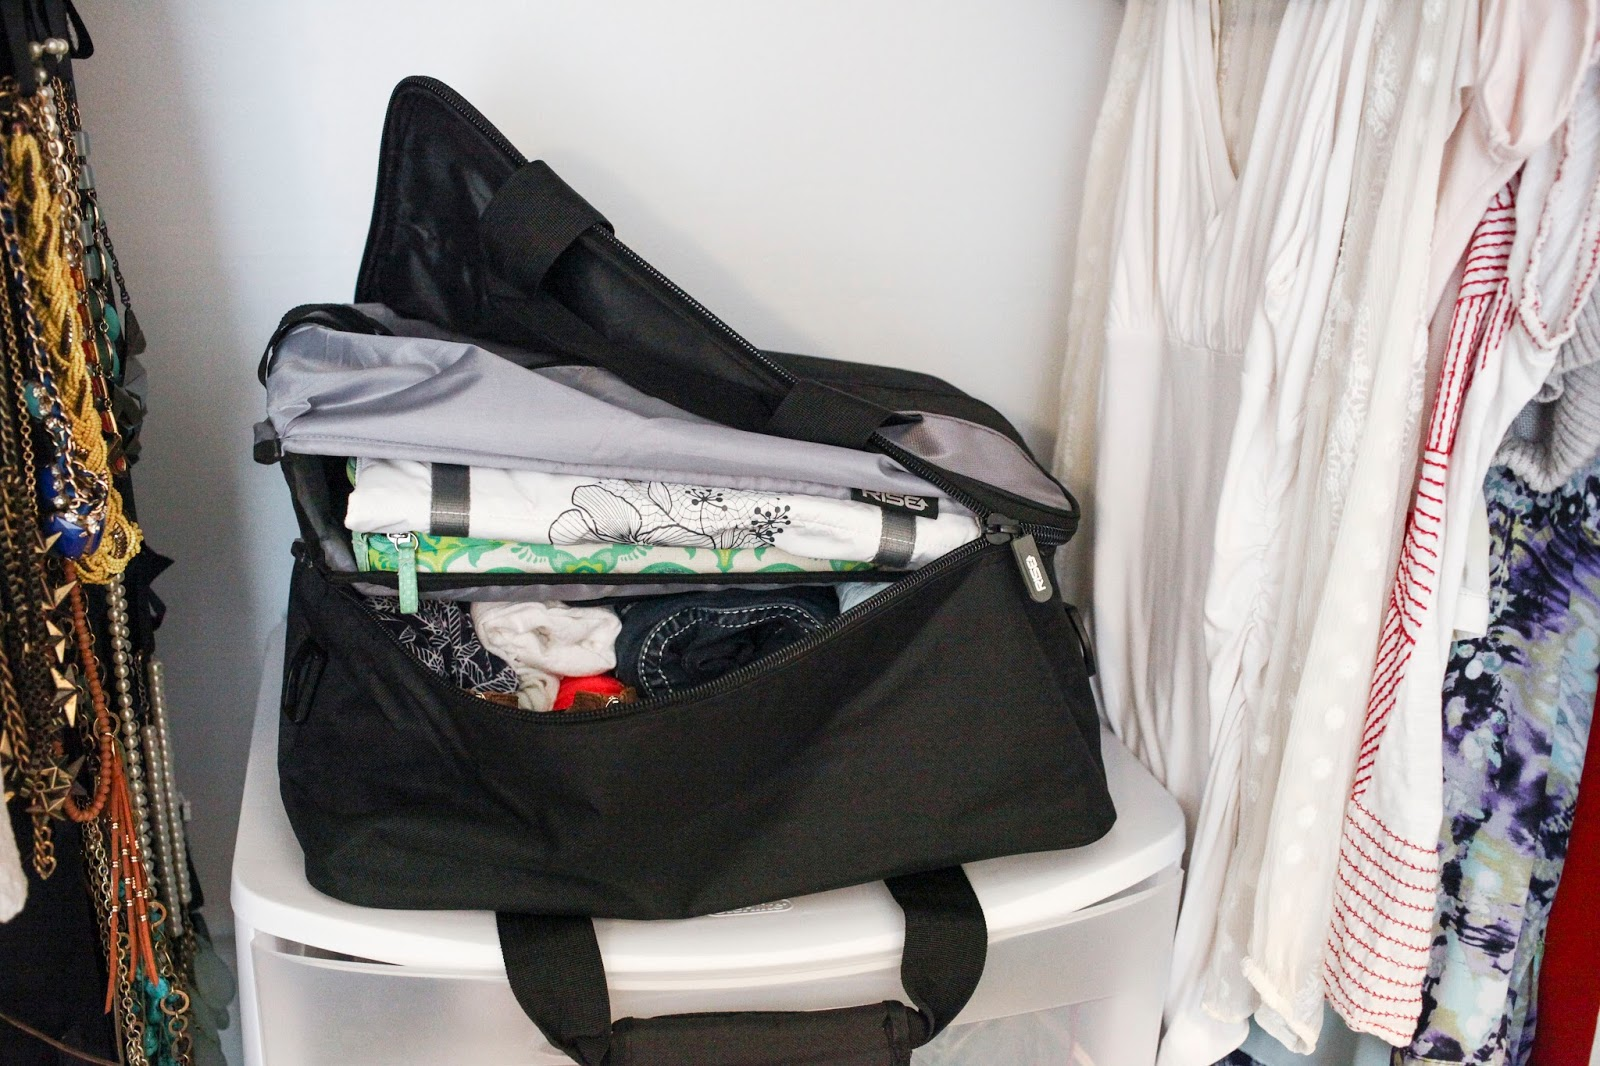 A Jumper bag by RISE Gear packed and folded down